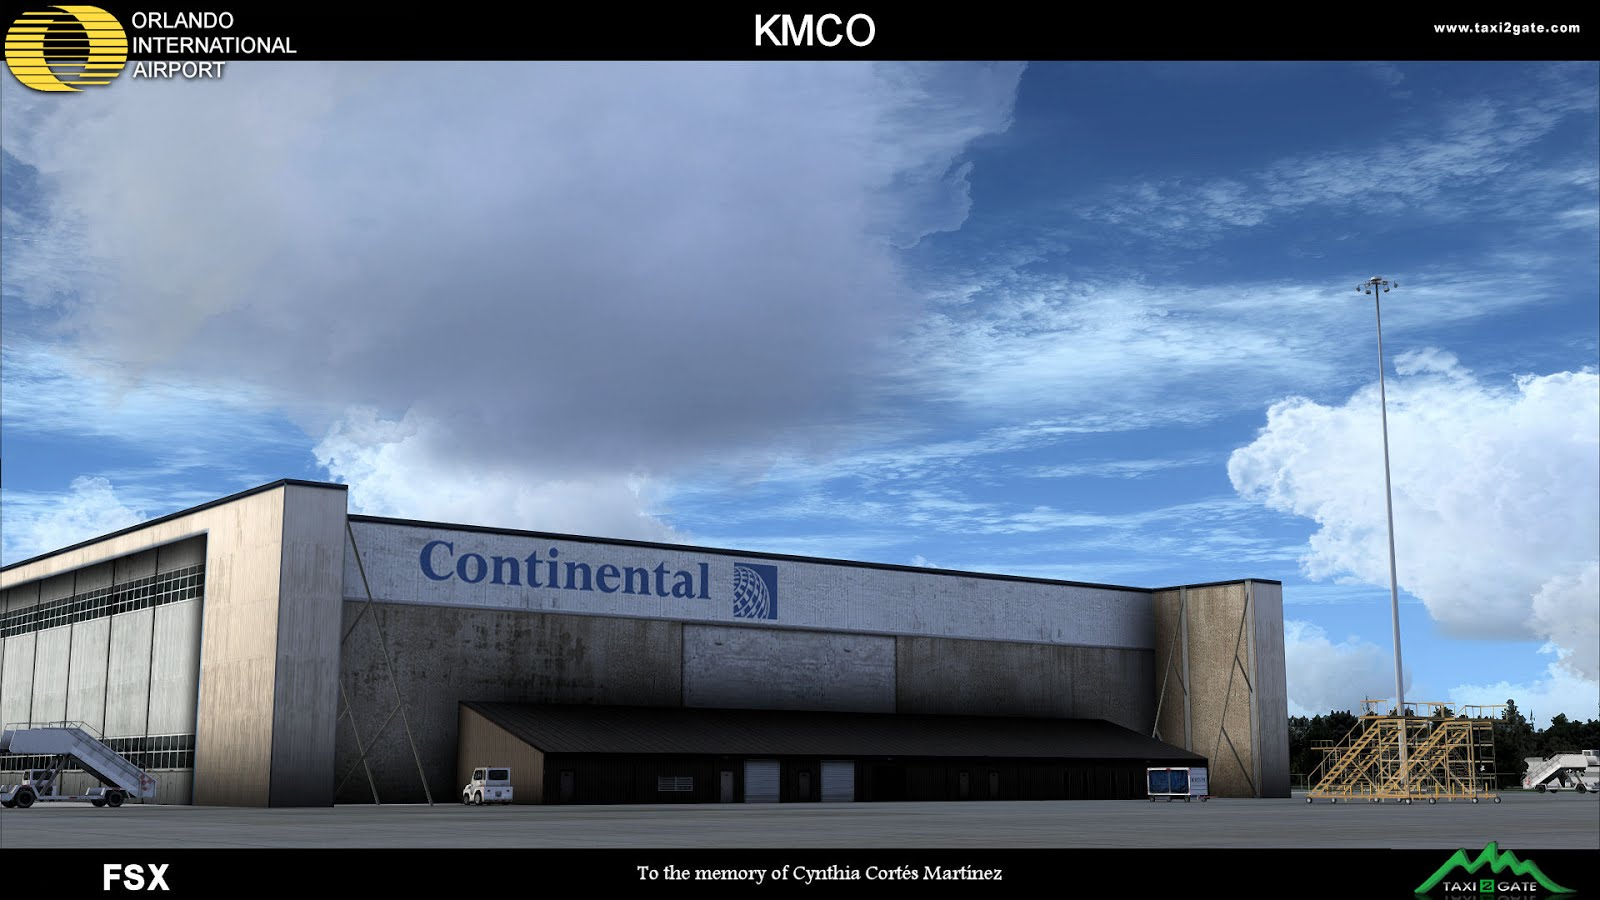 Download Scenery Taxi2Gate Orlando Int  Aiport (KMCO) #FSX